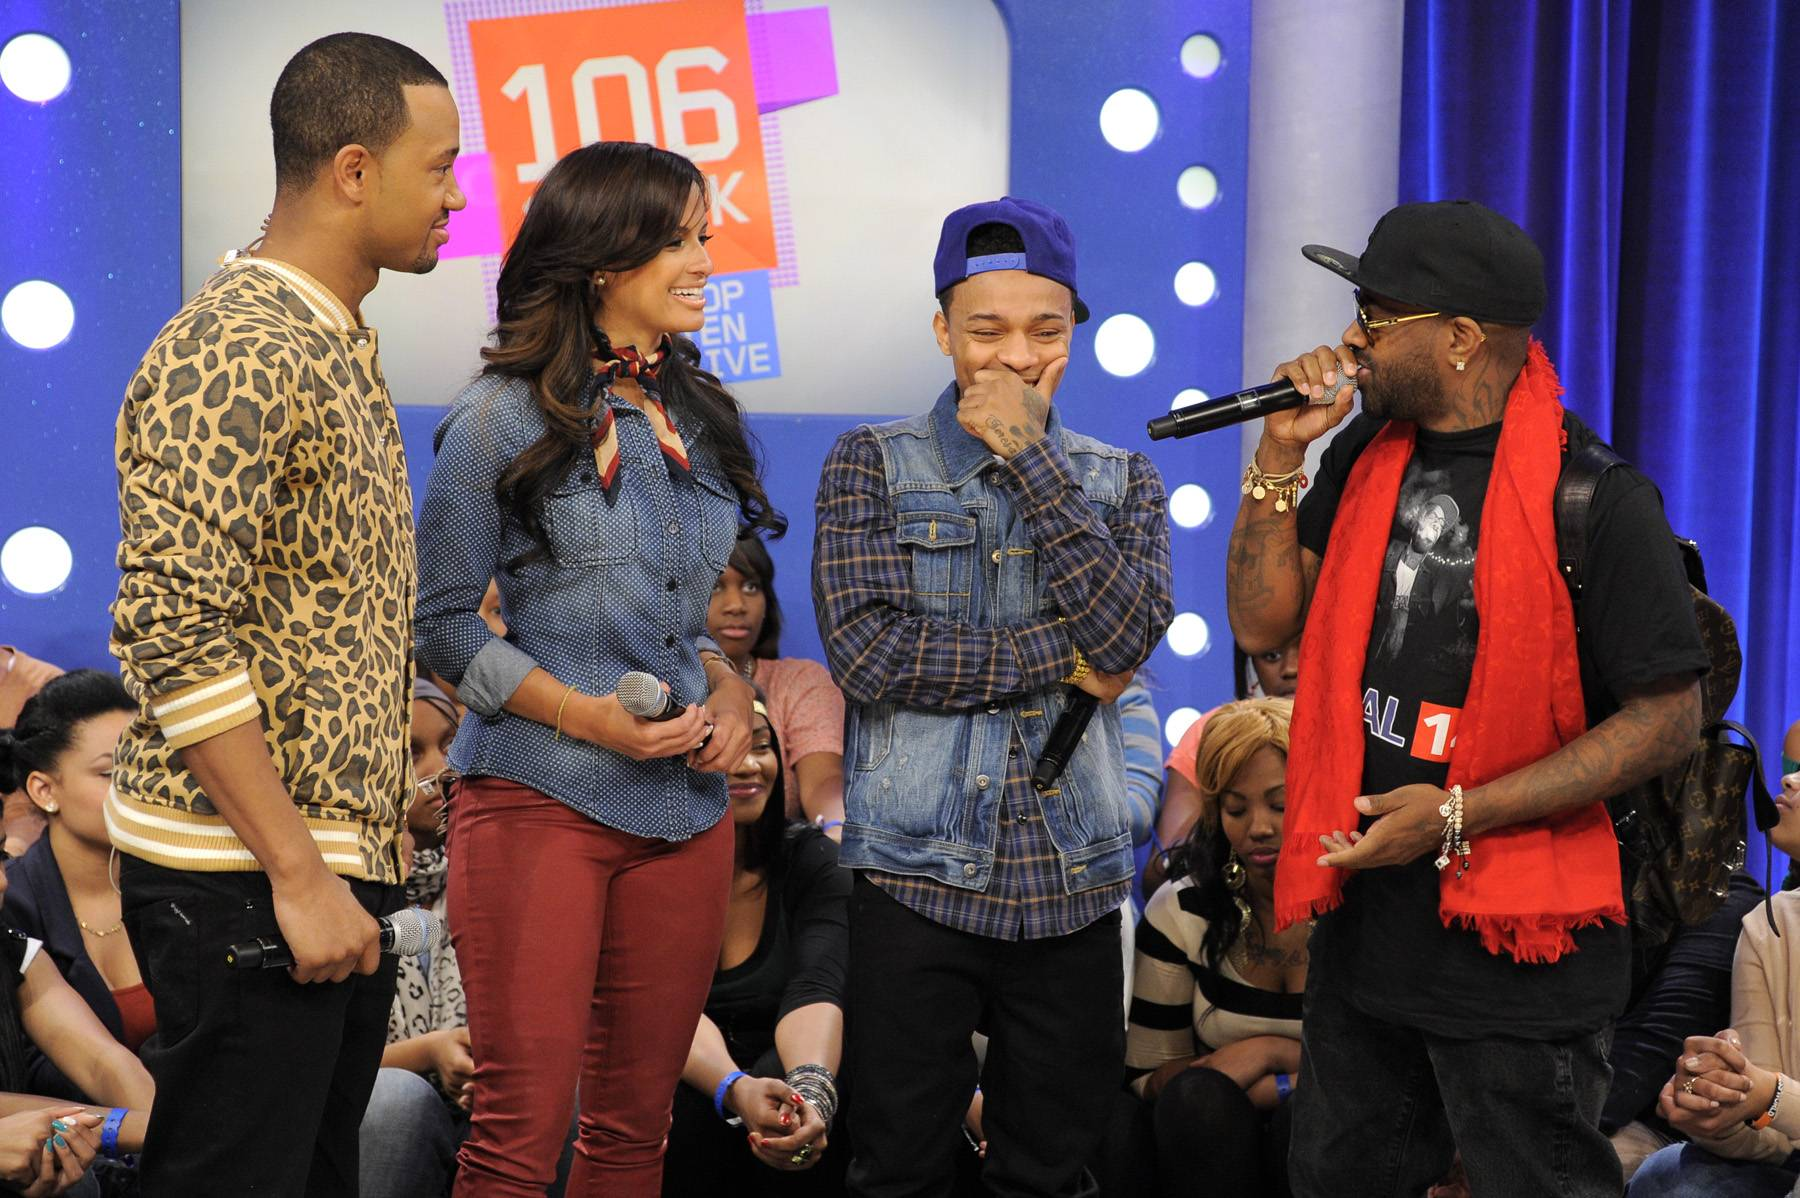 Oh Yeah - Bow Wow blushes as Jermaine Dupree tells Terrence J and Rocsi Diaz of their first meeting, at 106 & Park, January 23, 2012. (Photo: John Ricard / BET)